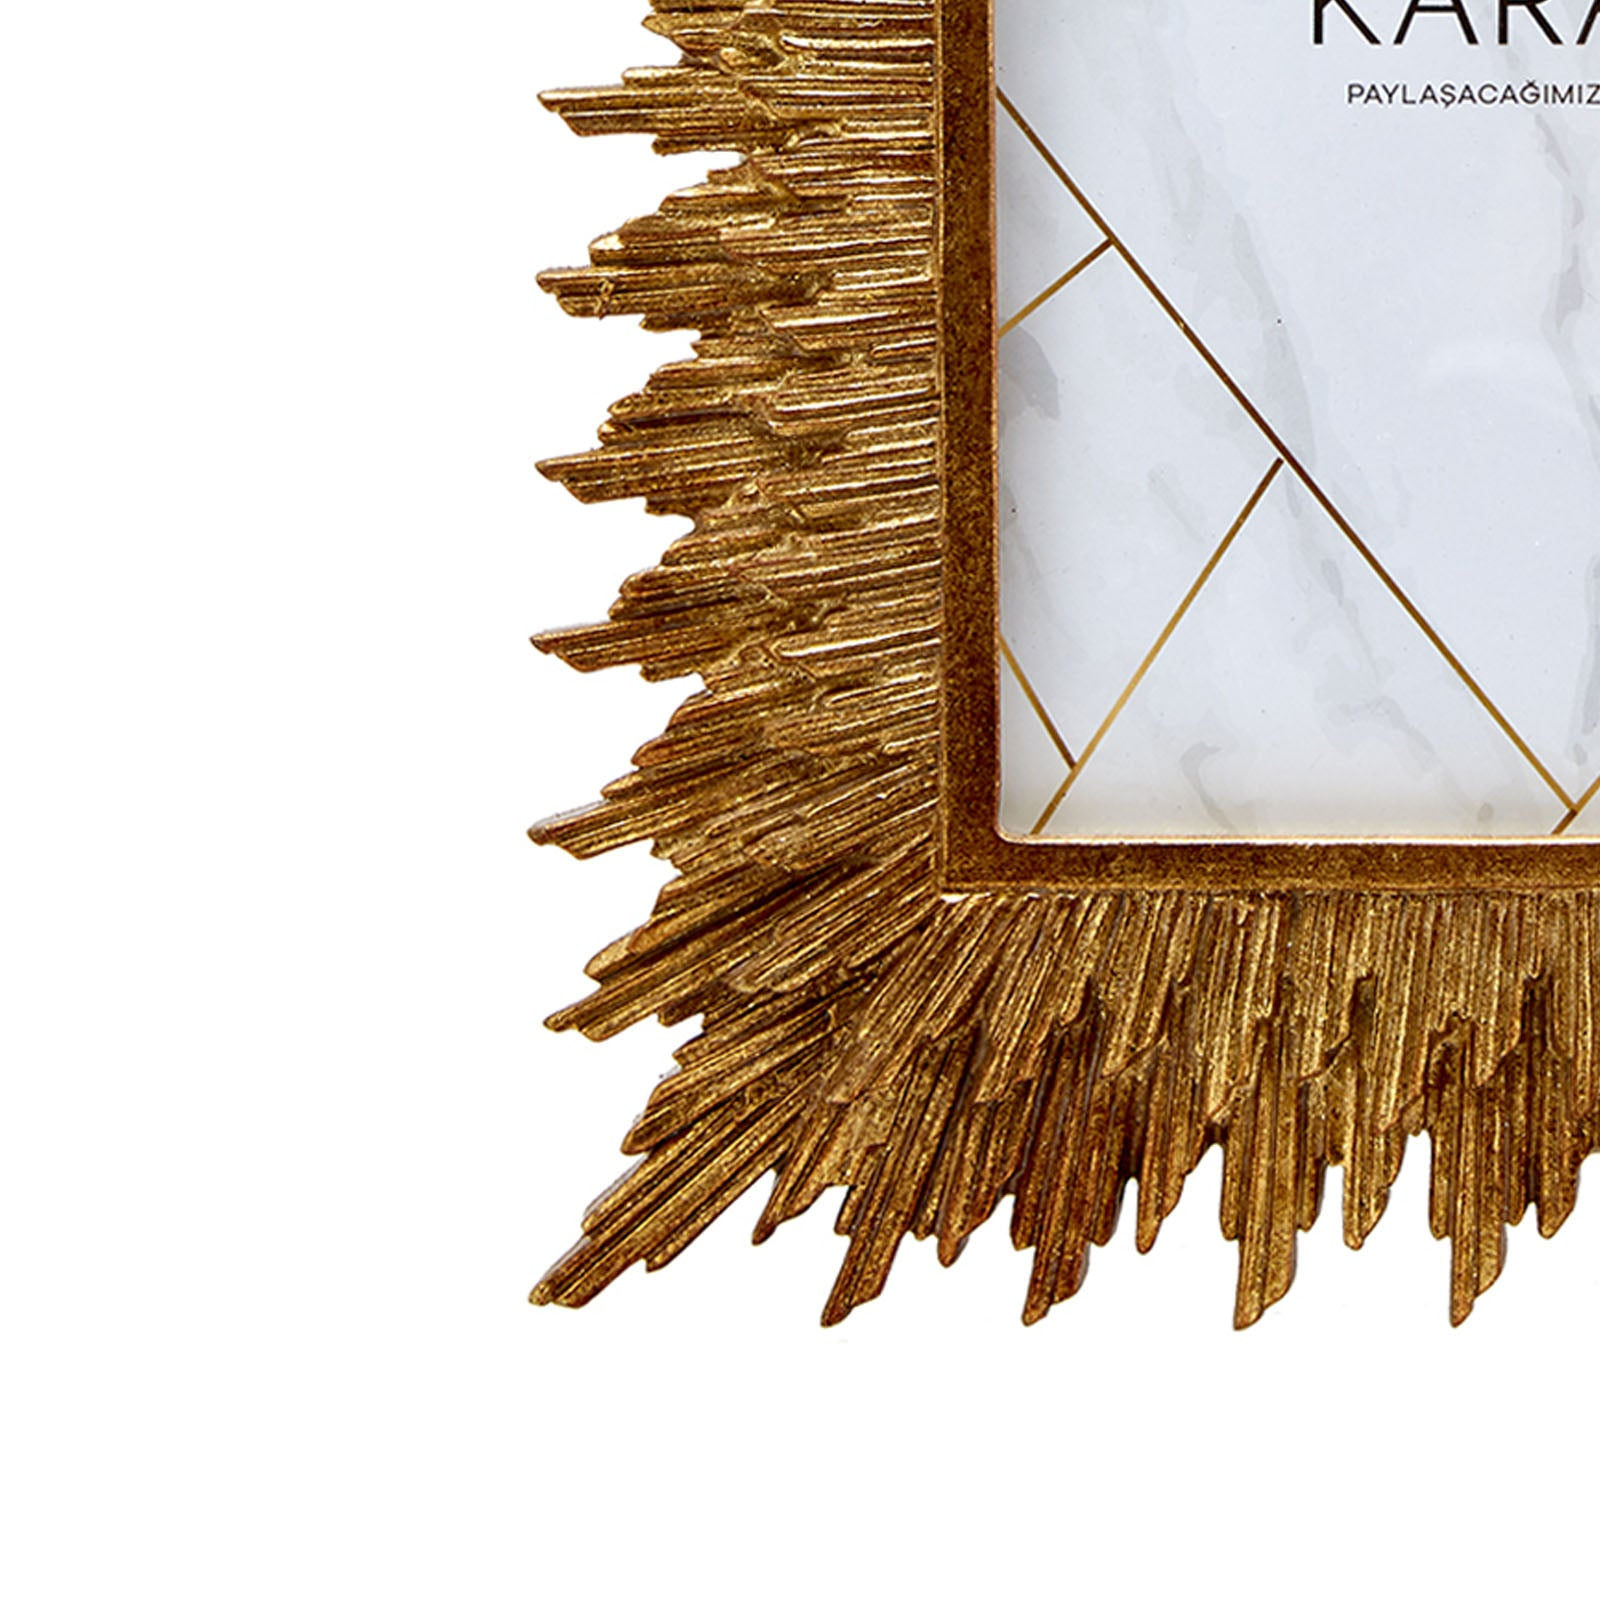 Pre-order 35 days delivery Karaca Hollywood FRAME 53.19.01.1208